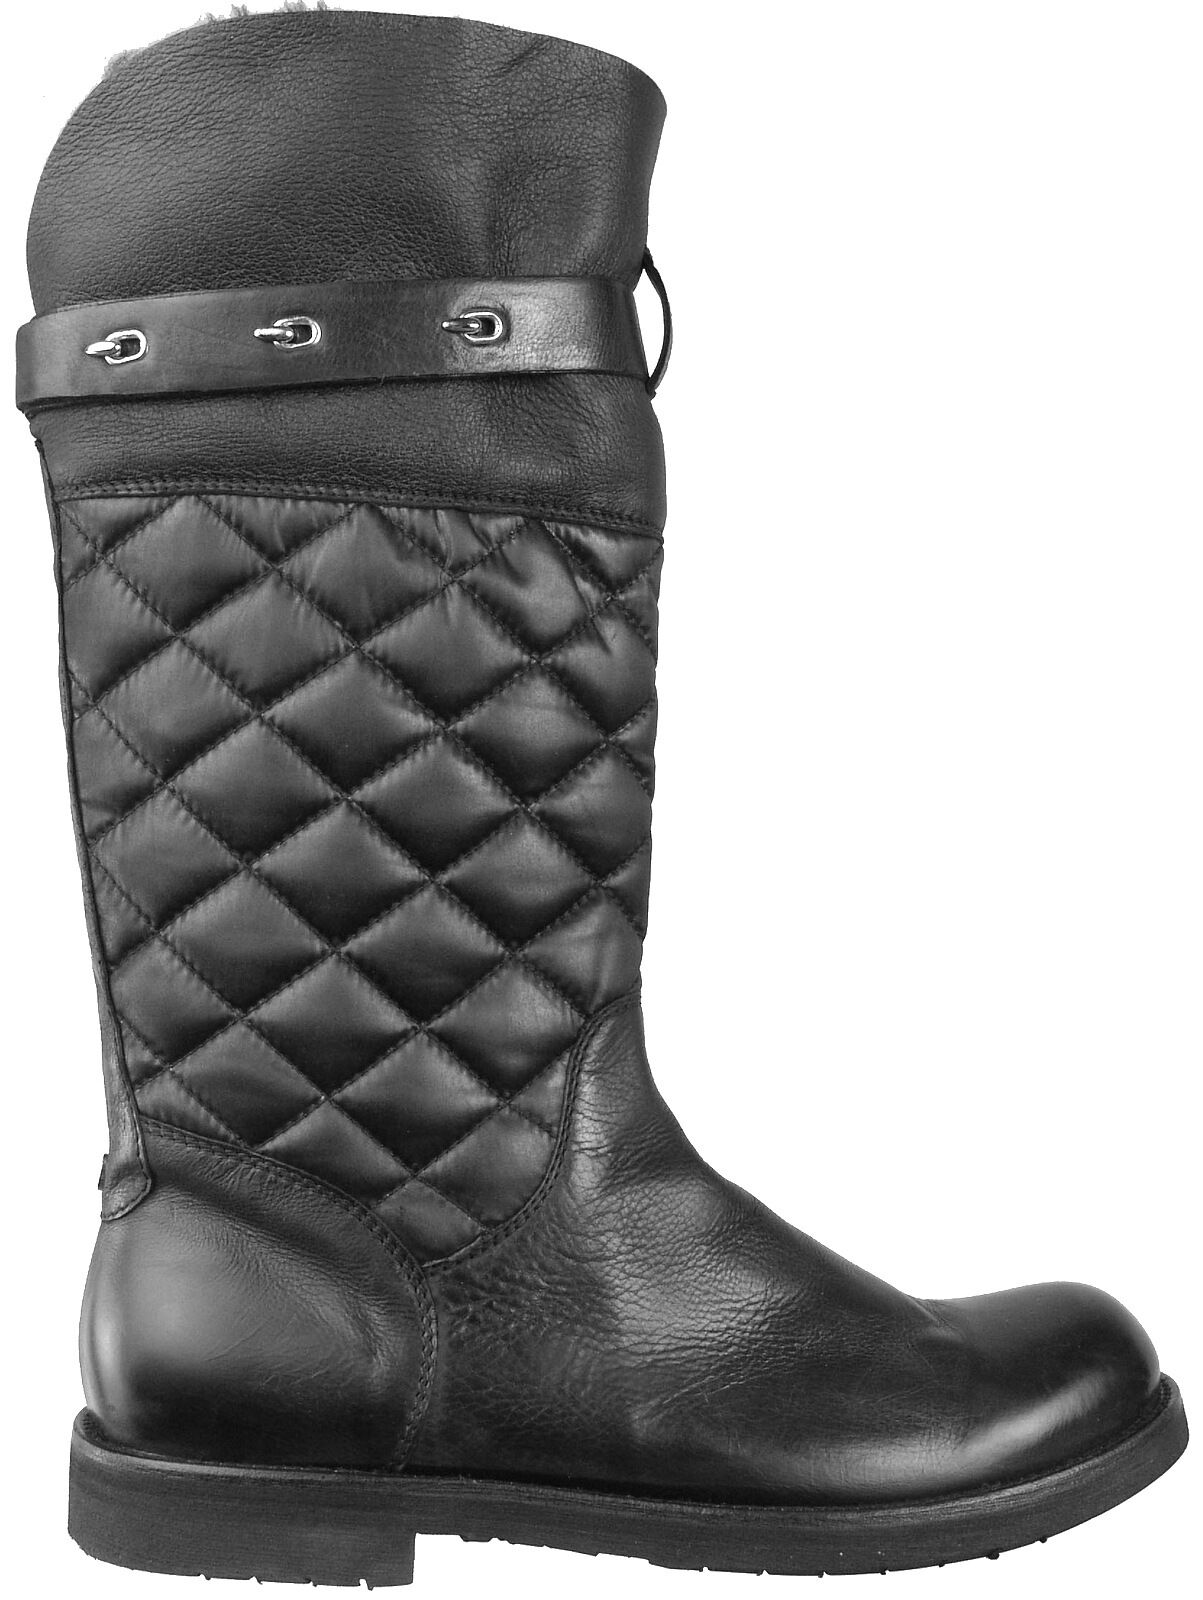 CESARE PACIOTTI SHEARLING QUILTED LEATHER BOOTS US 10 ITALIAN MENS SHOES